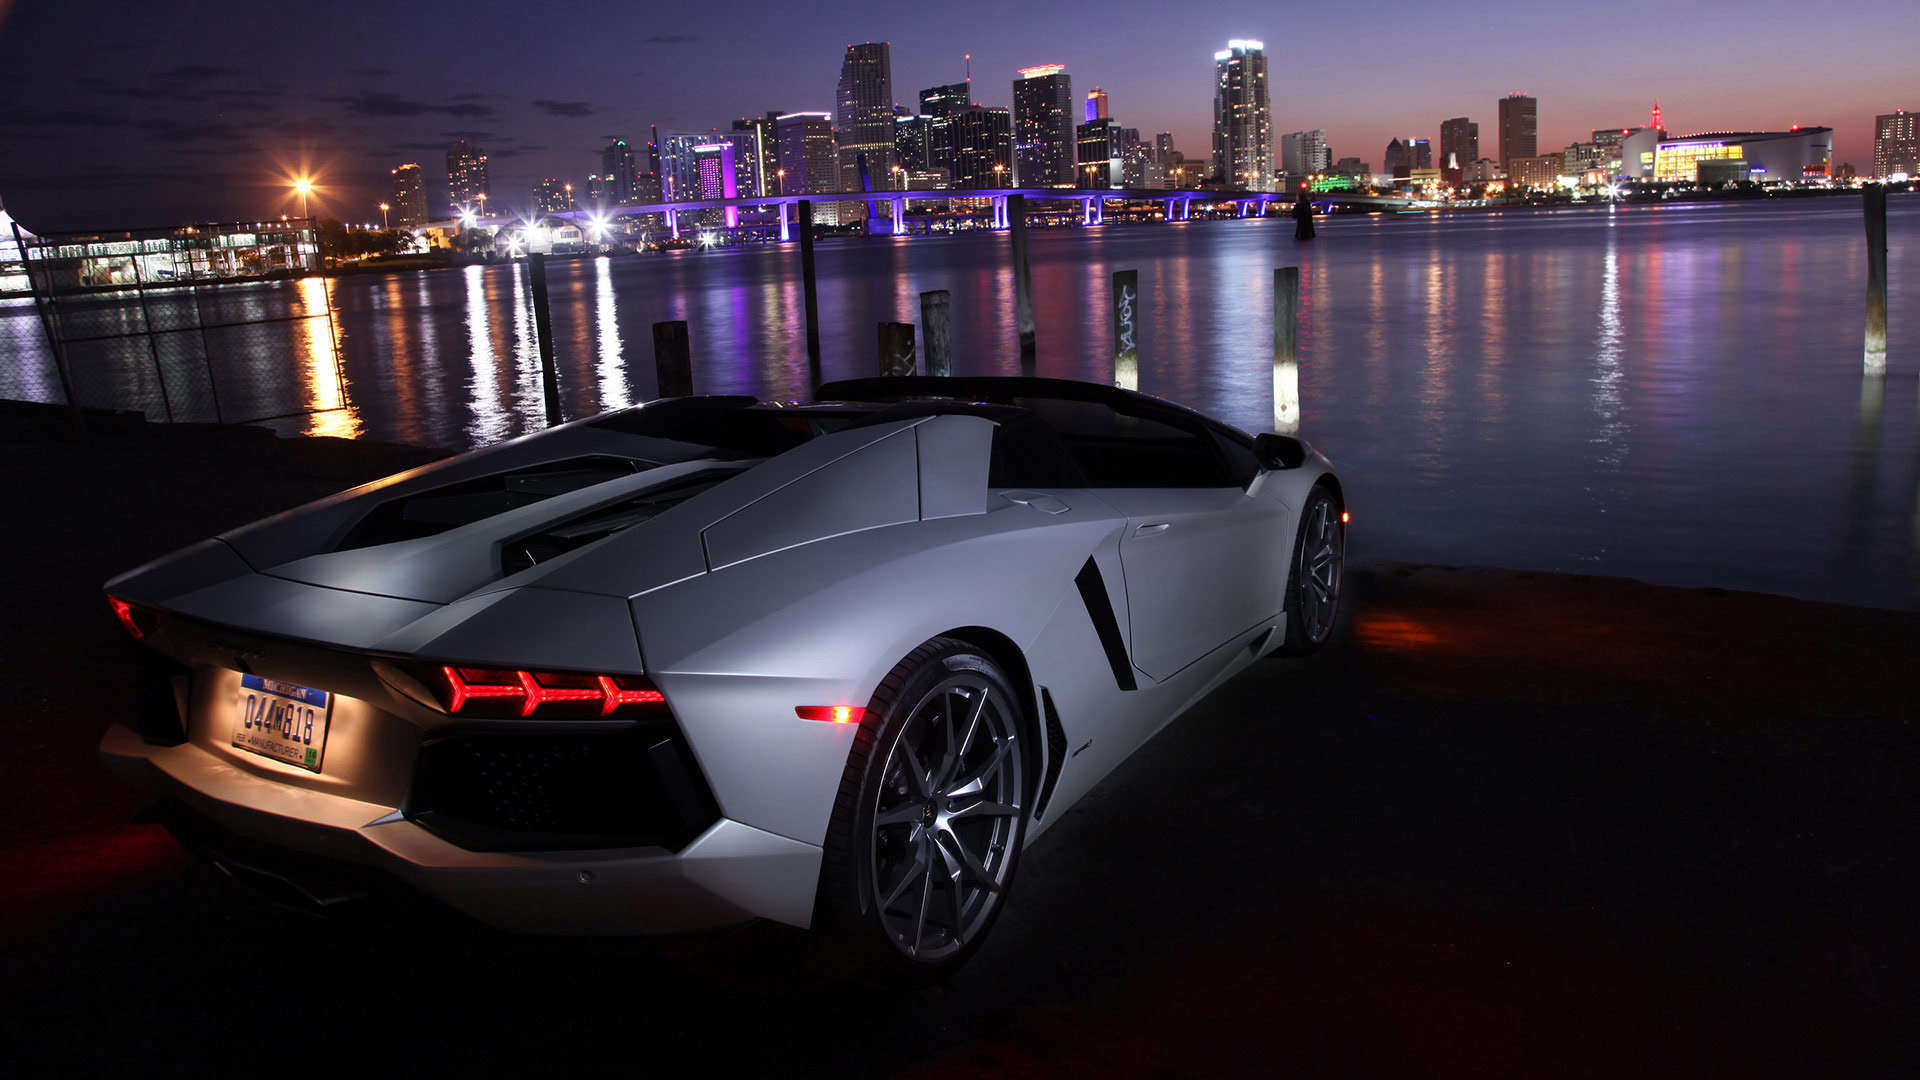 Download Lamborghini Aventador Wallpaper Hd 1080p 19137 Movdata